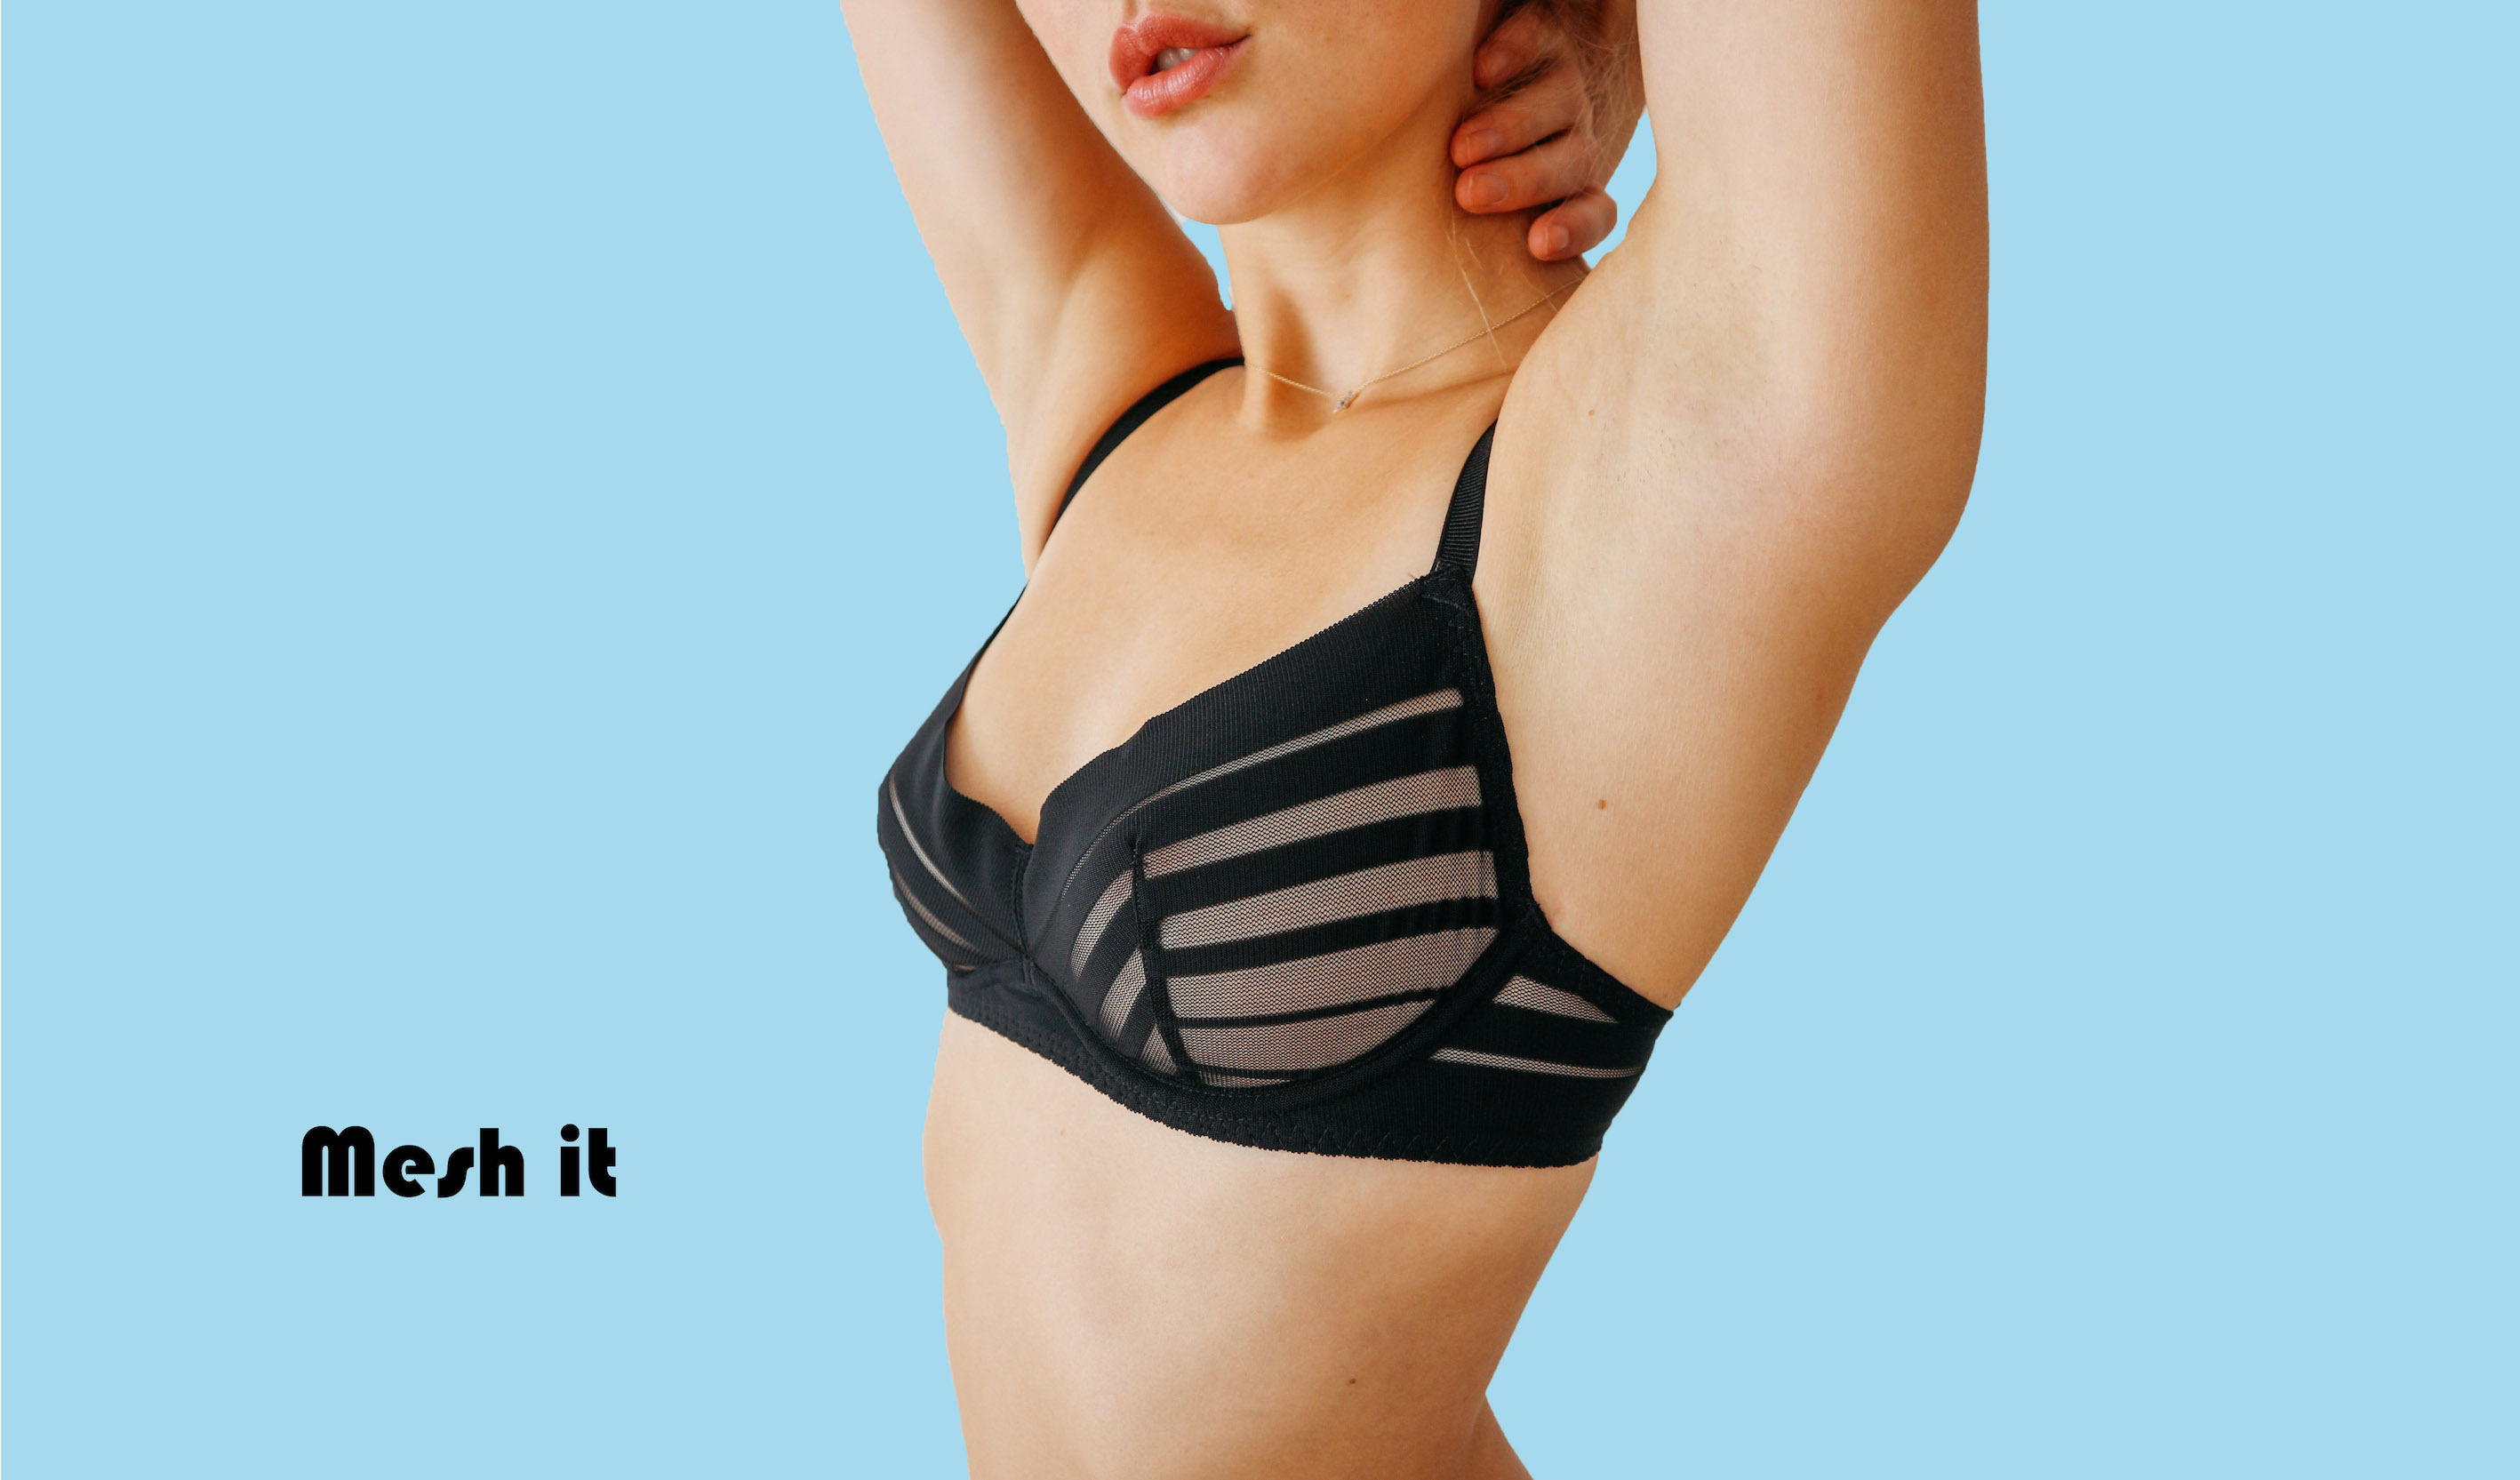 floortjeloves, the perfect fit, the perfect fall fit, passionata, underwear, lingerie, bra